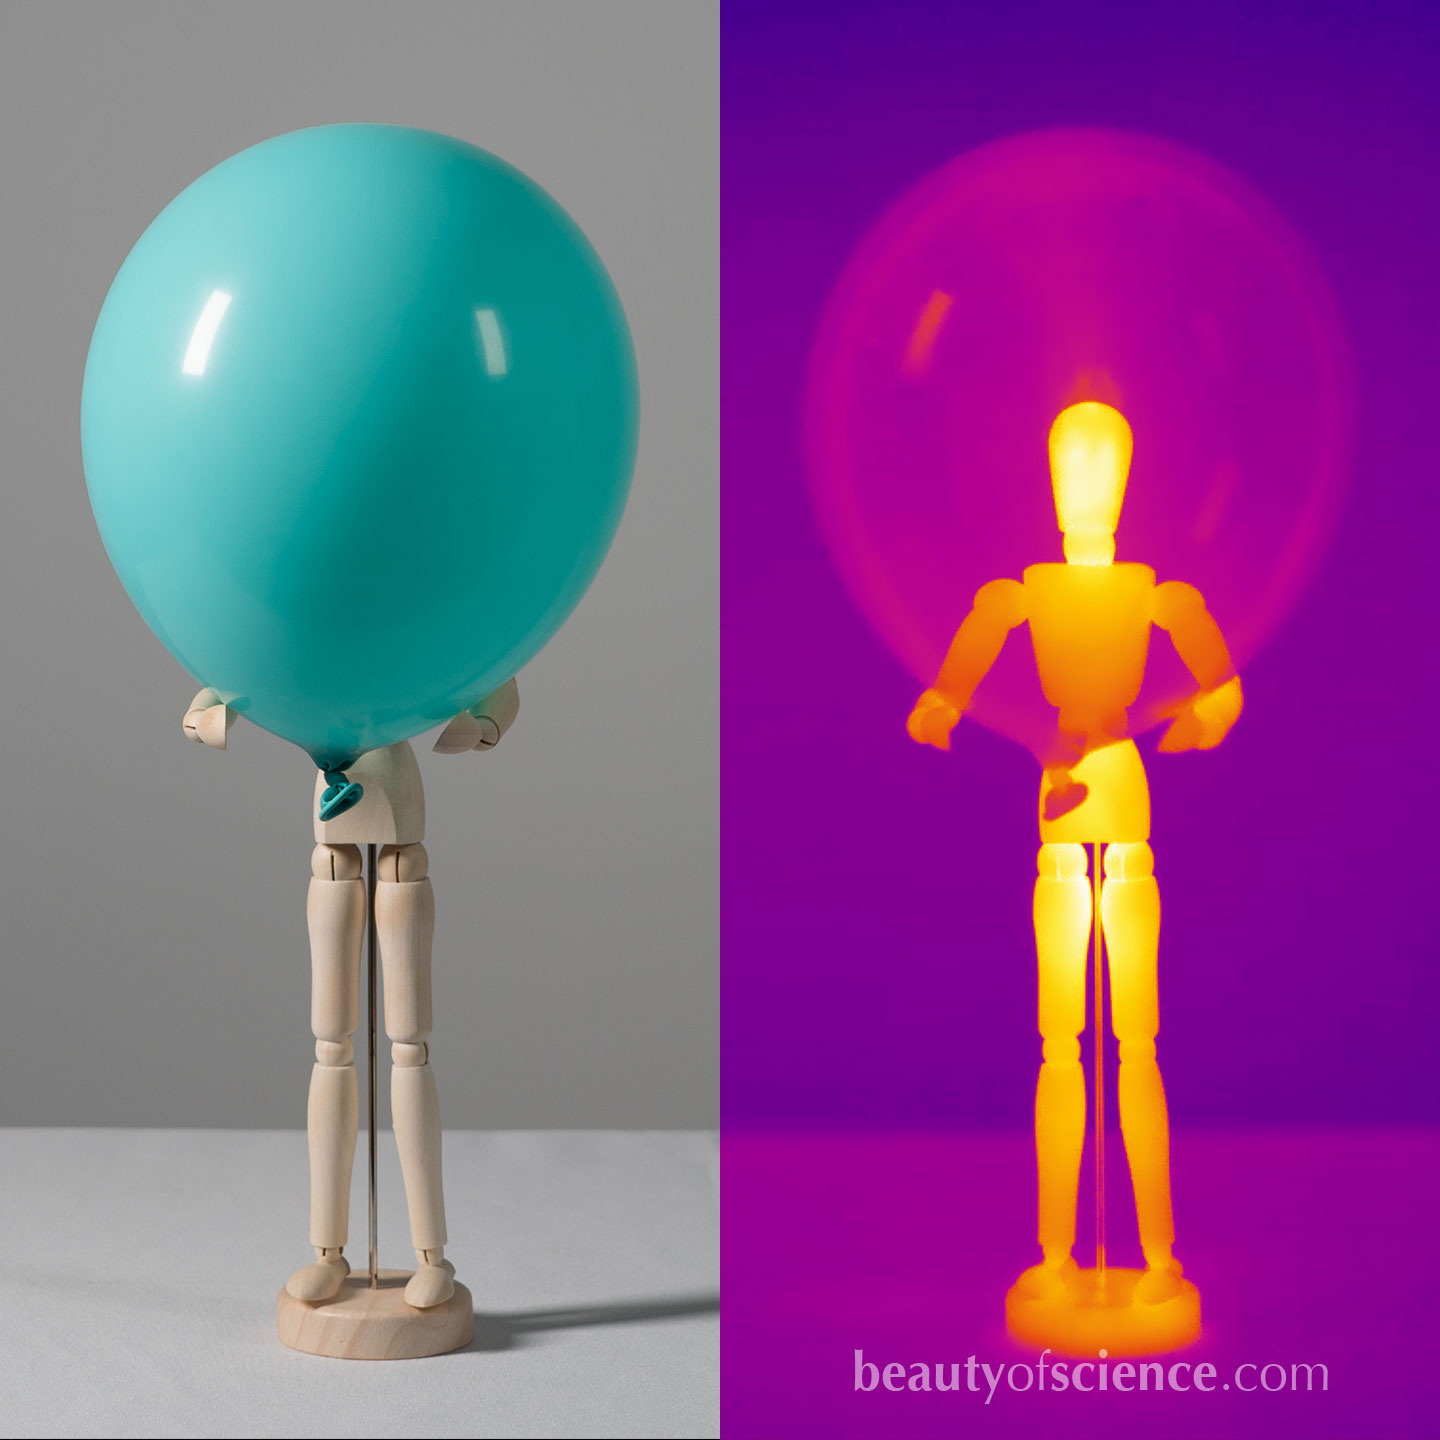 A balloon which is opaque in the visible light becomes transparent in thermal imaging.